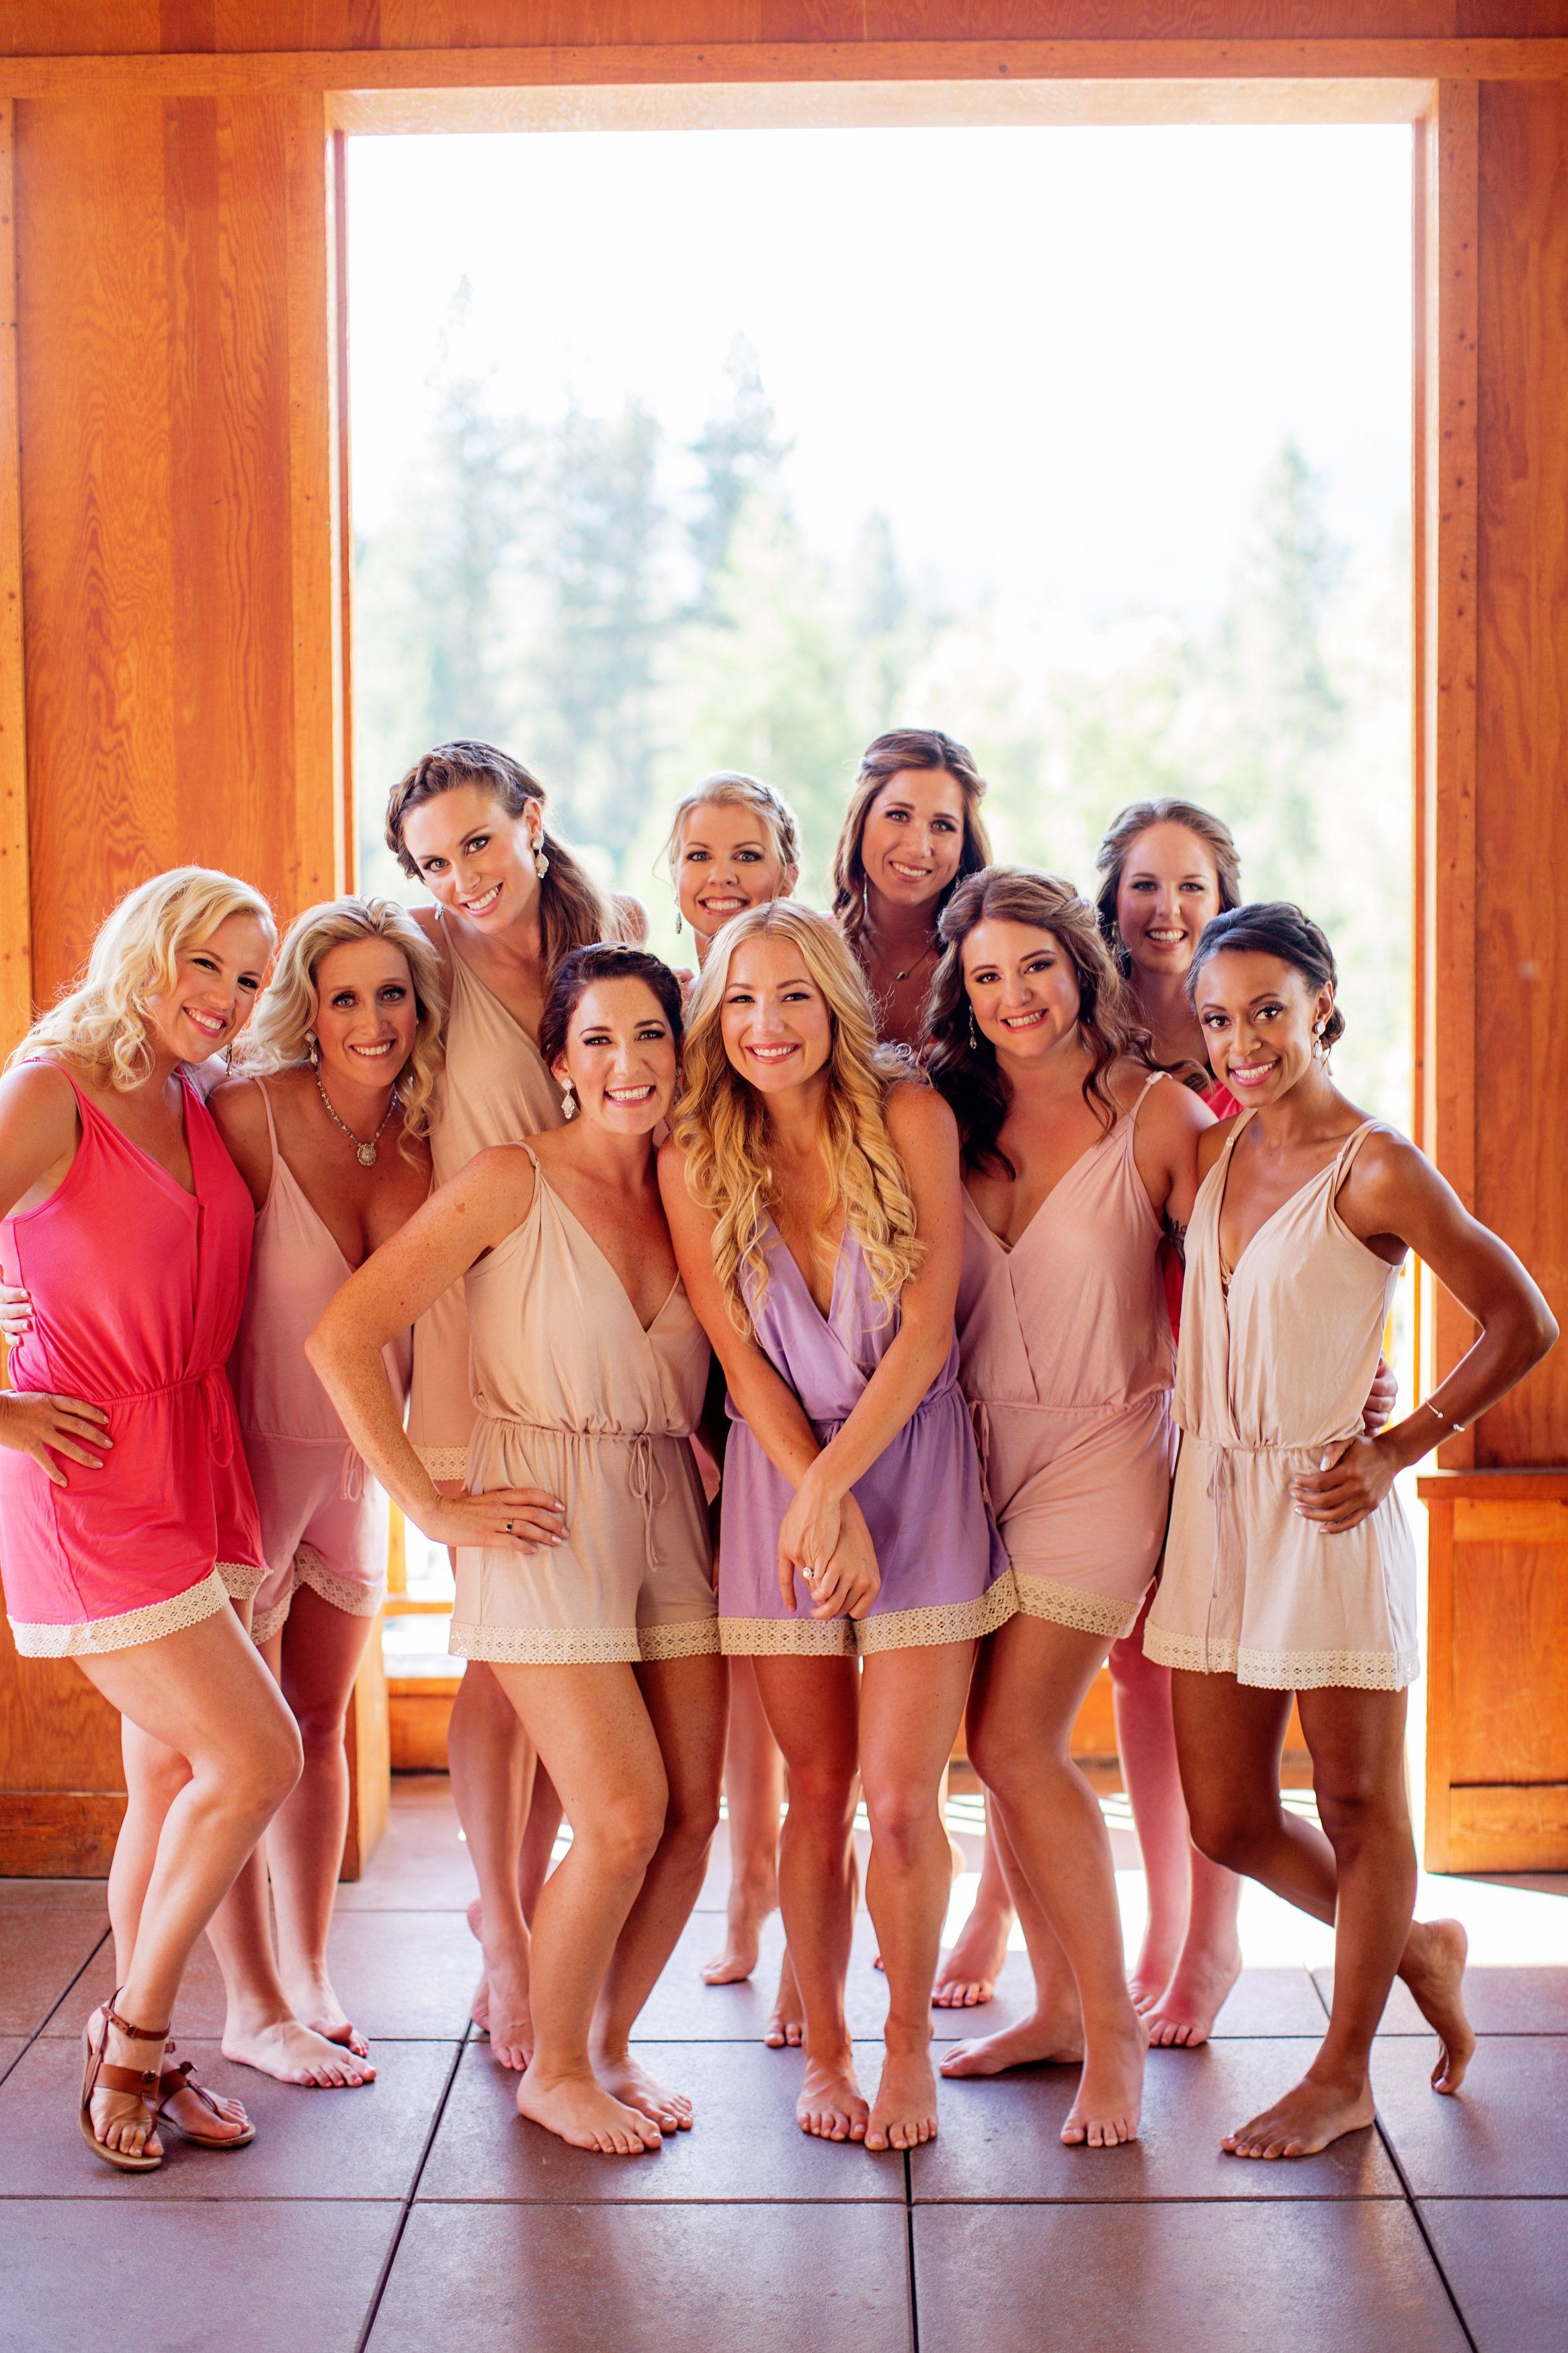 Bridal Designer Hayley Paige And Her Bridesmaids All In Love Ophelia Rompers Photo Credit To Chardphoto